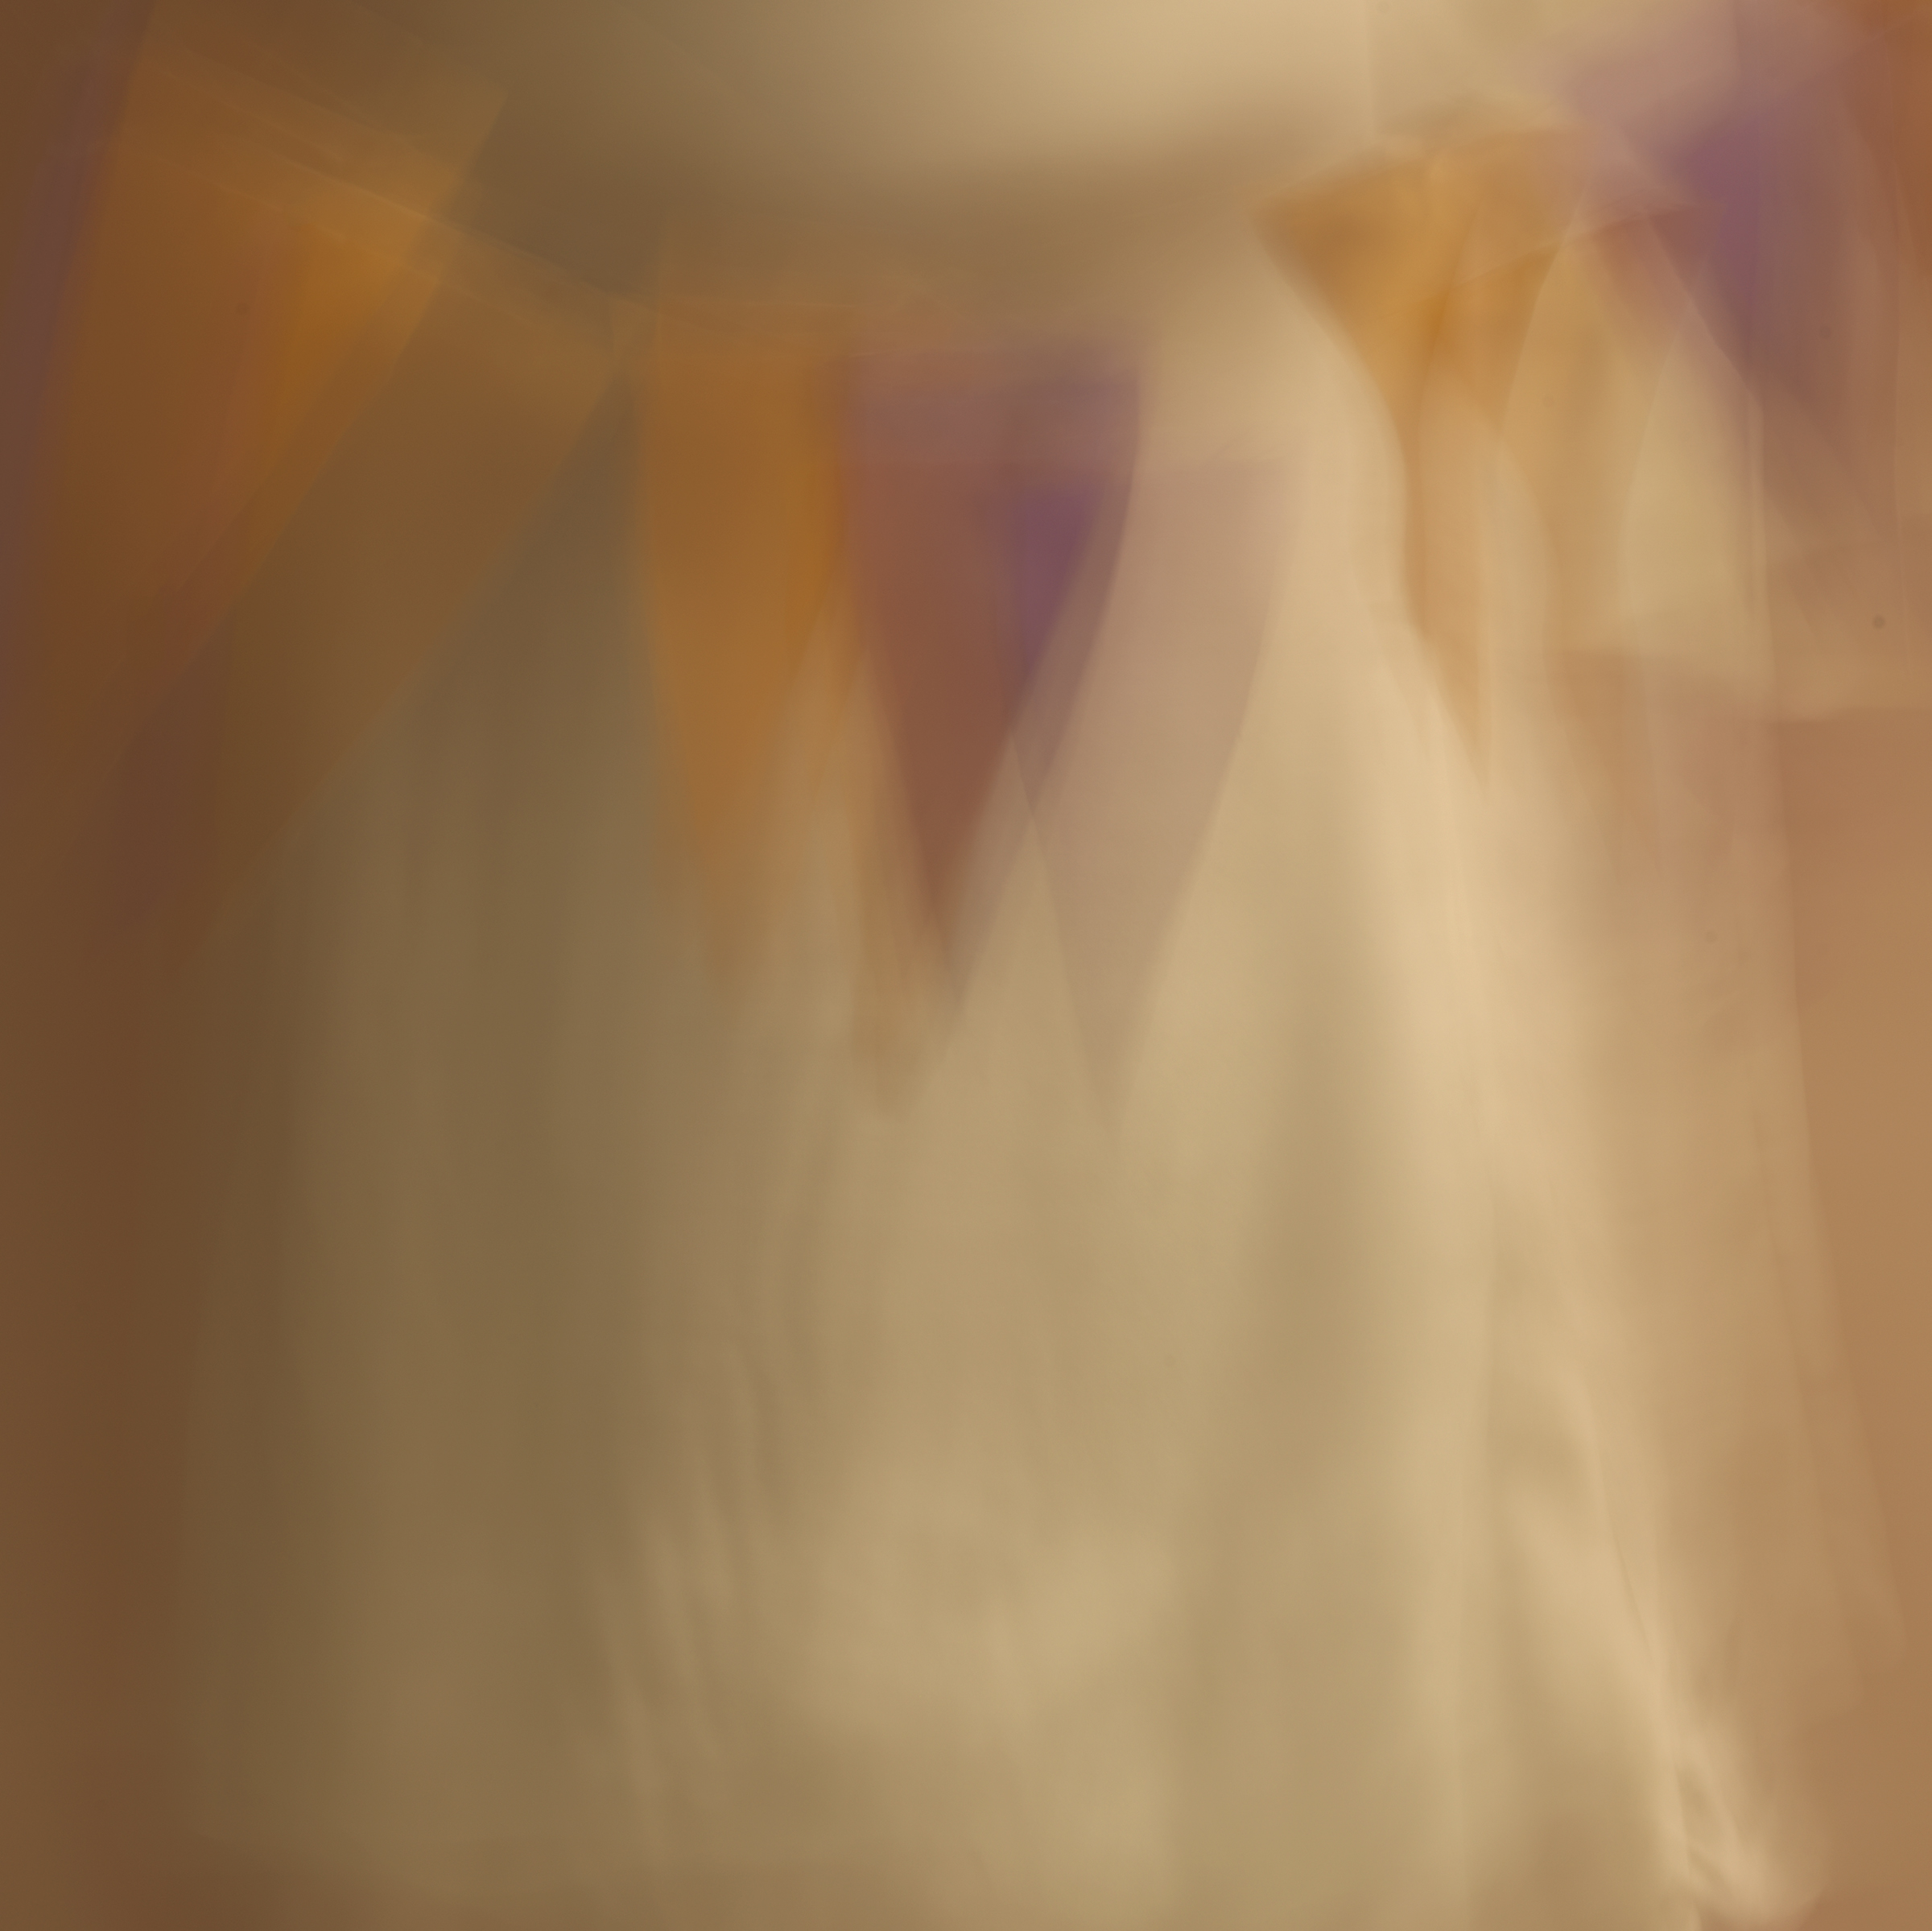 poet's pen, 12, 2014  20 x 20 in. Archival pigment print on Canson paper Edition of 5